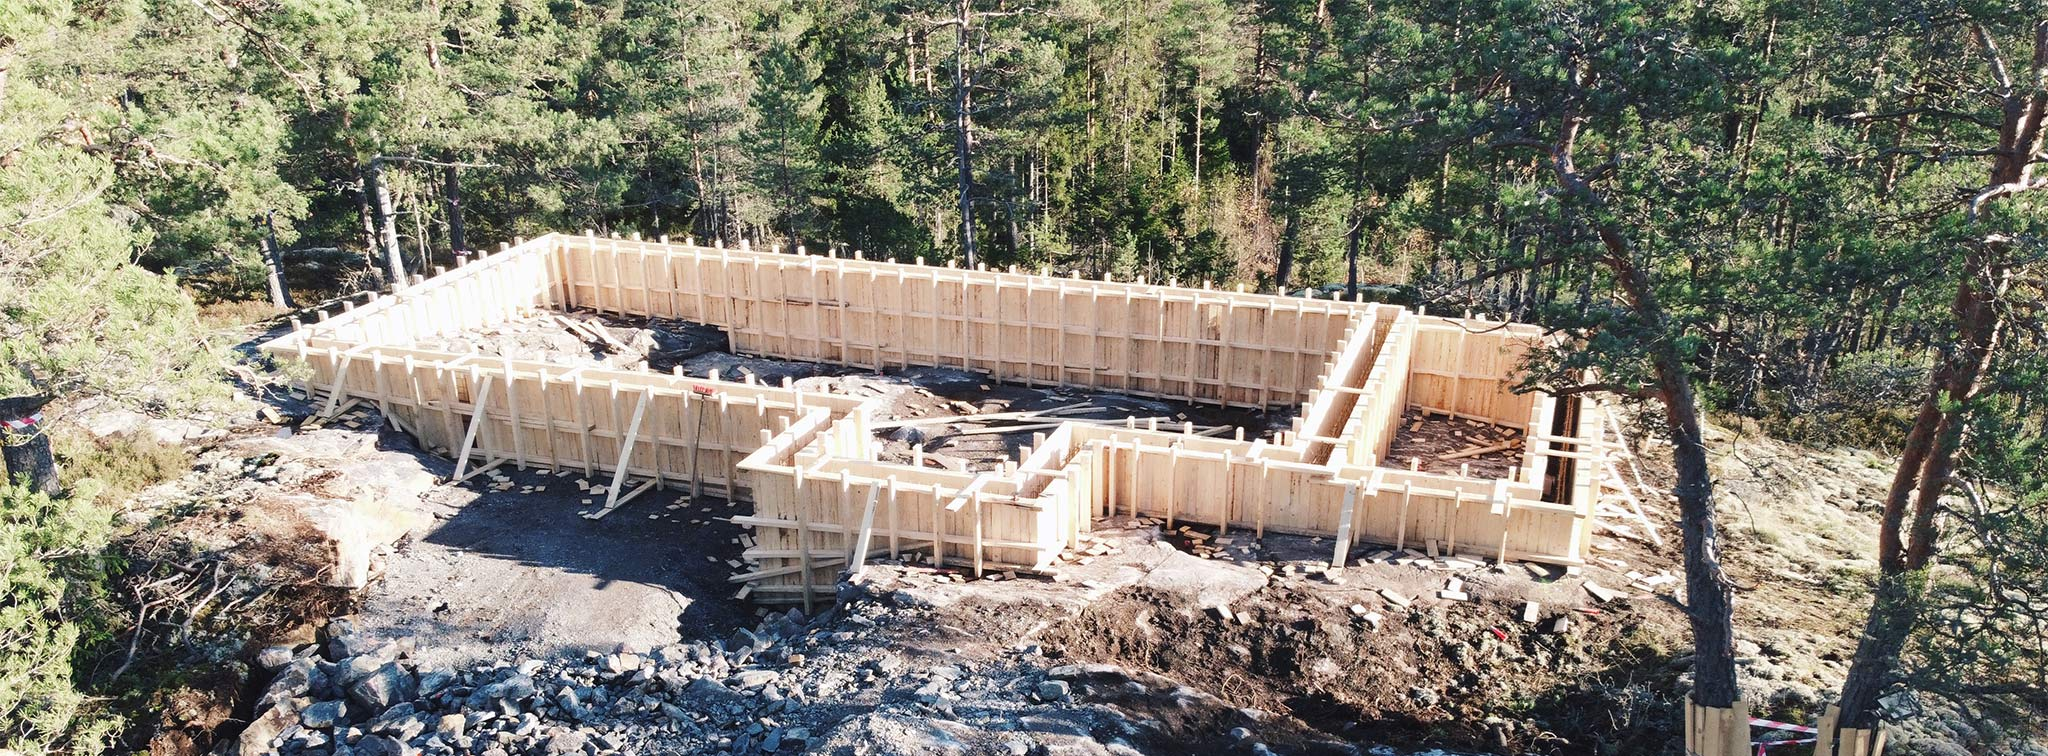 Detached house foundations